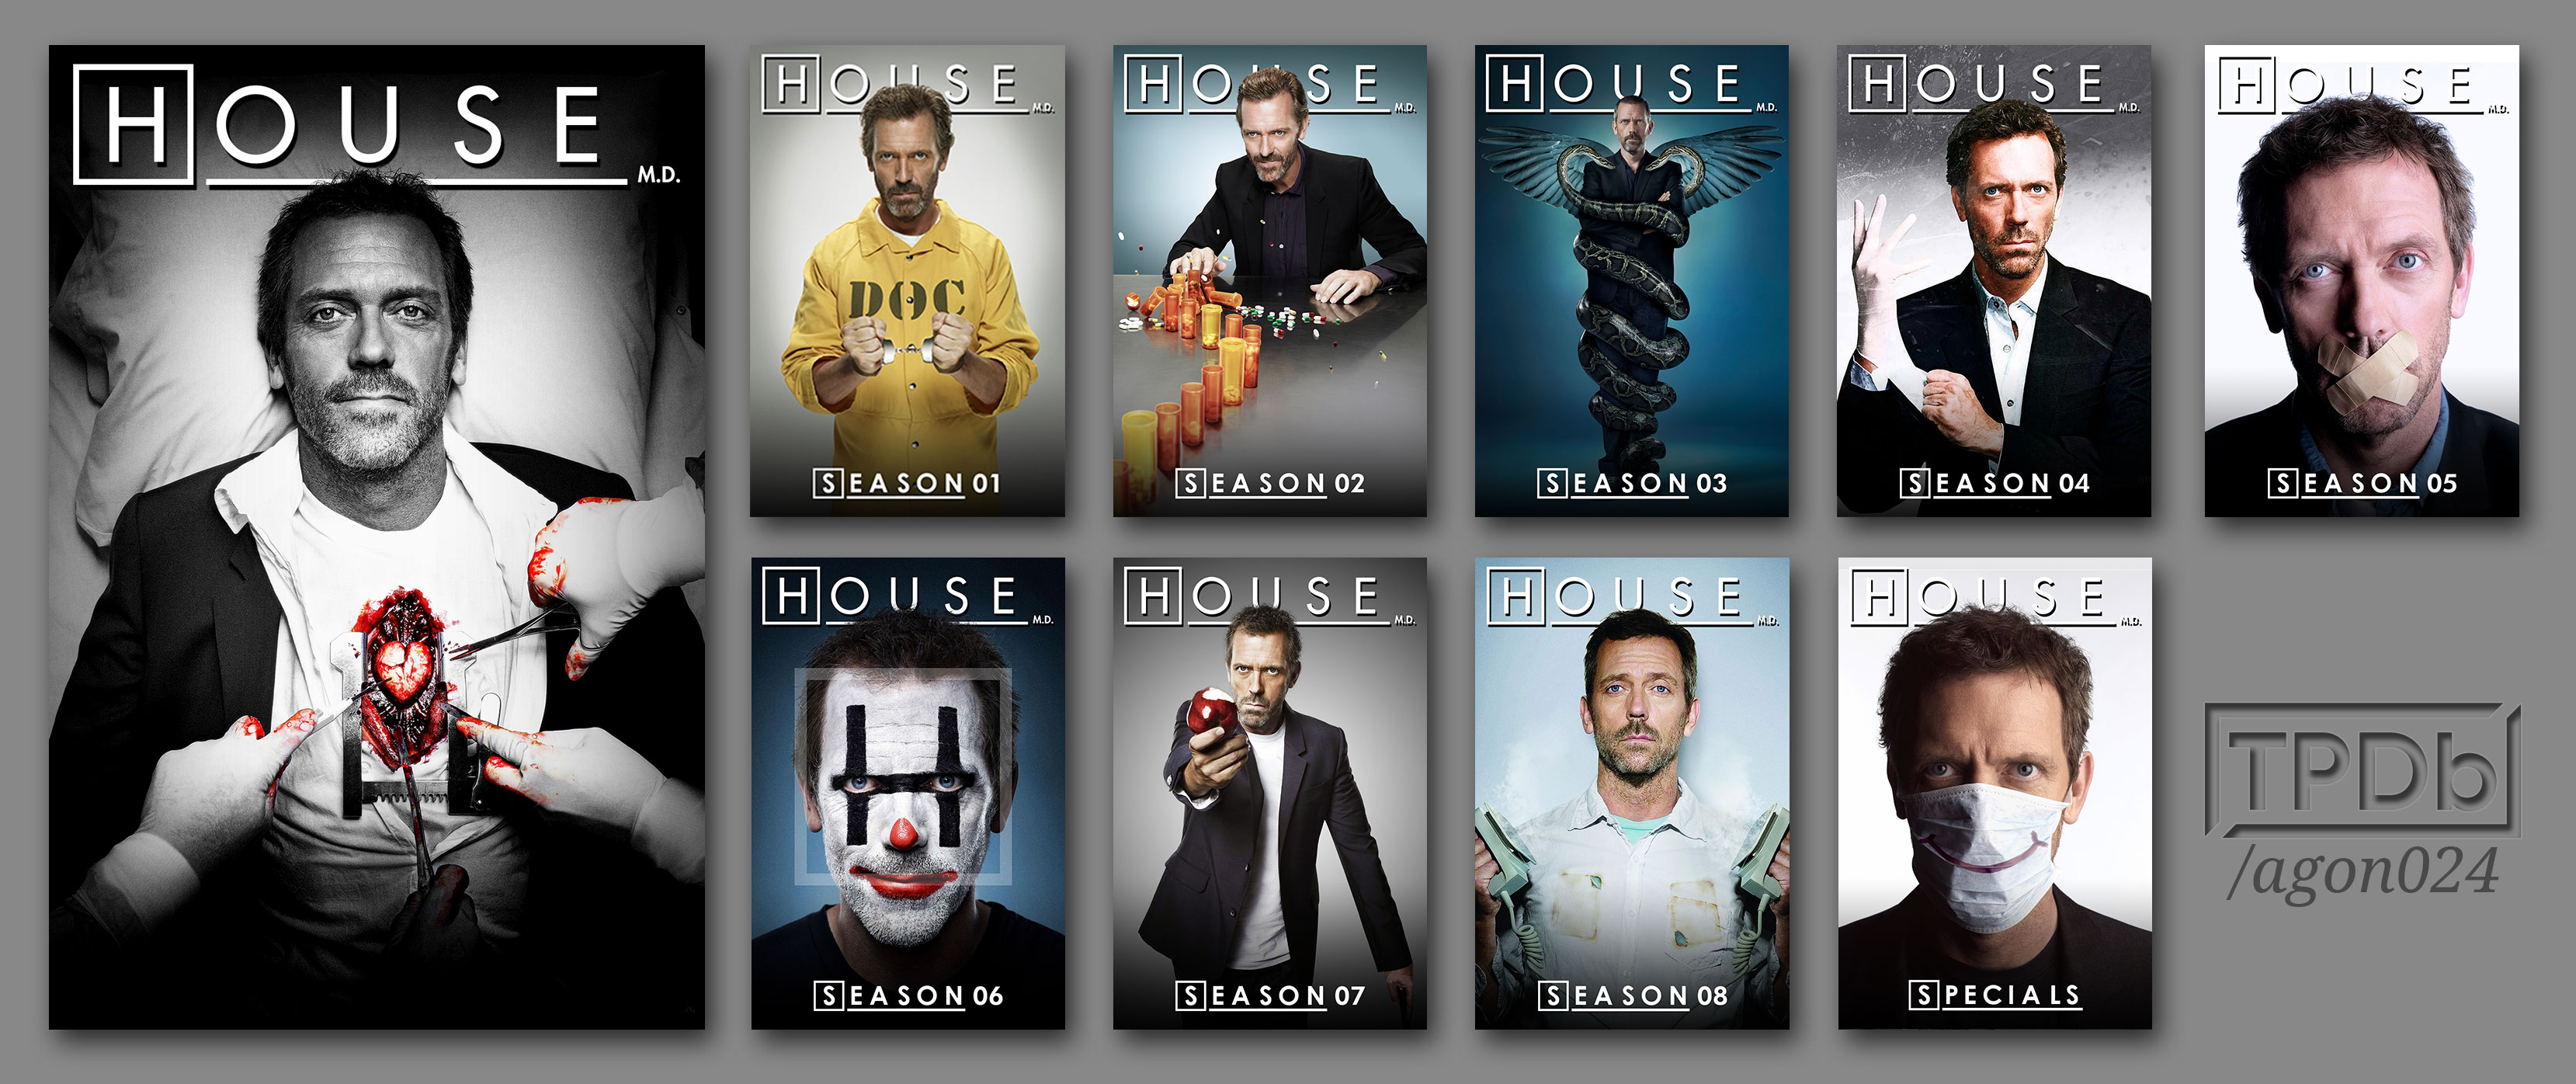 house series posters titled seasons